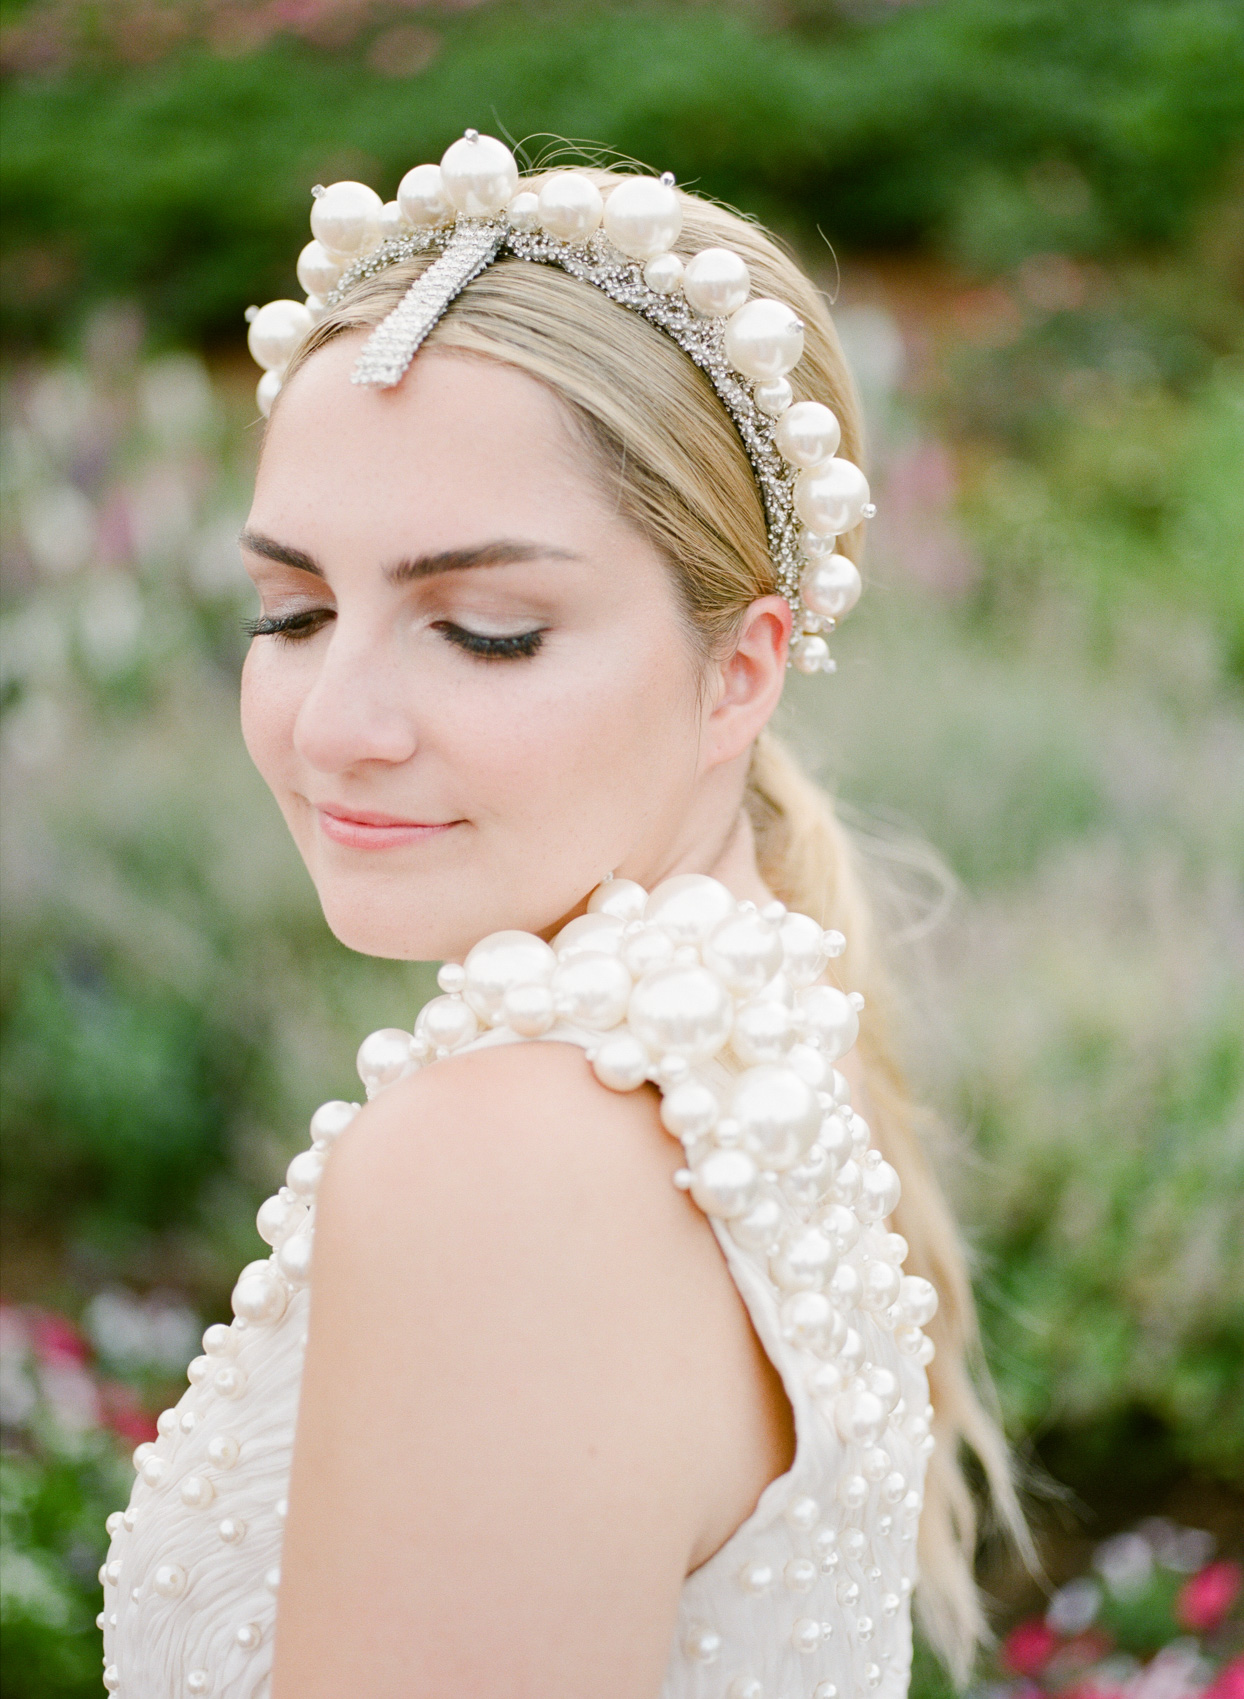 bride in pearl studded dress and headpiece for rehearsal dinner